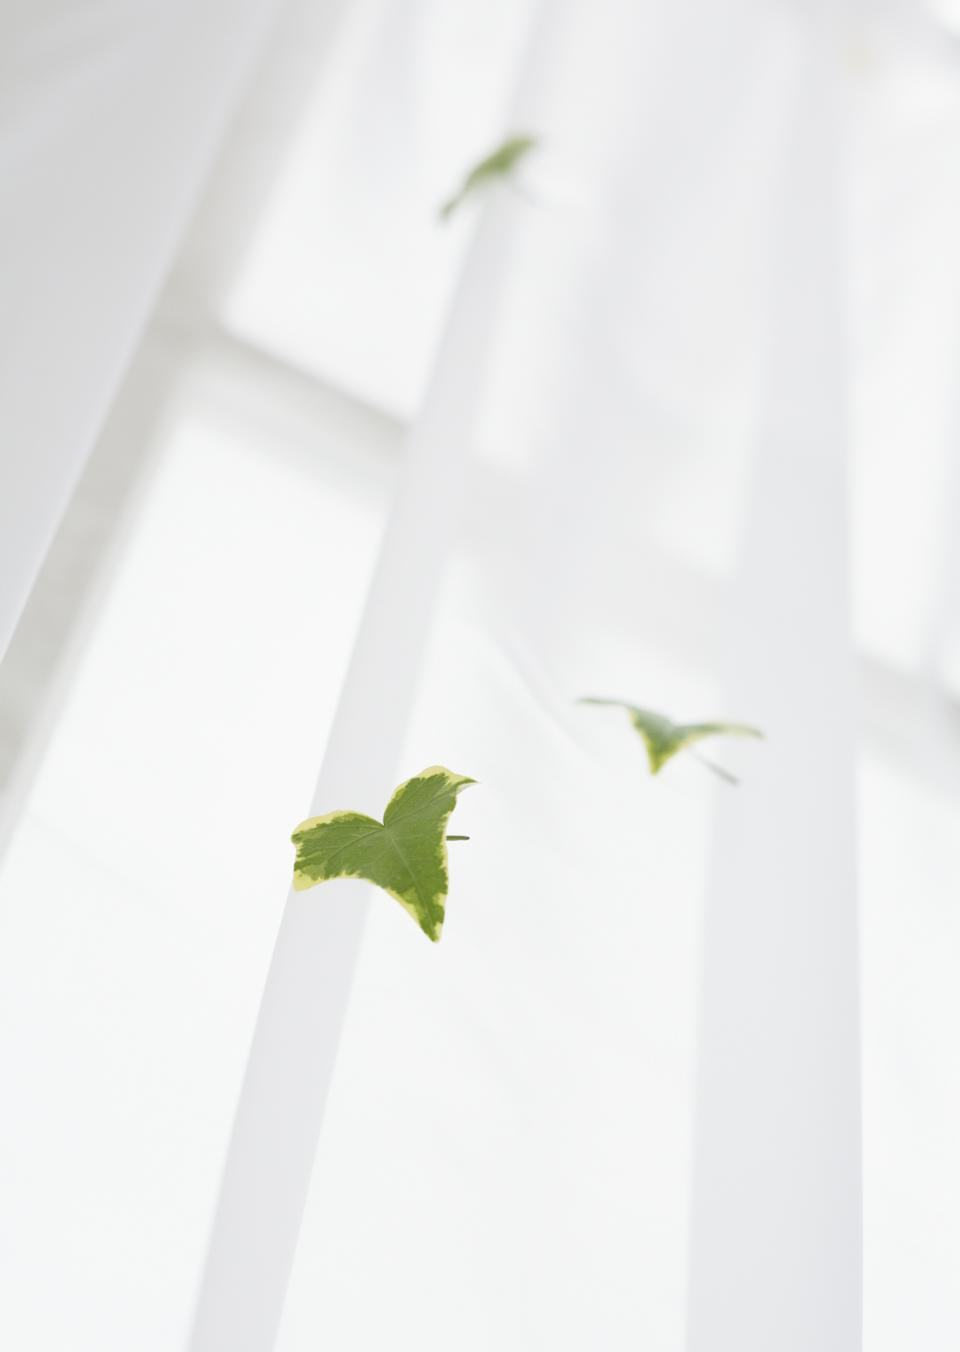 Ivy leaves on curtain